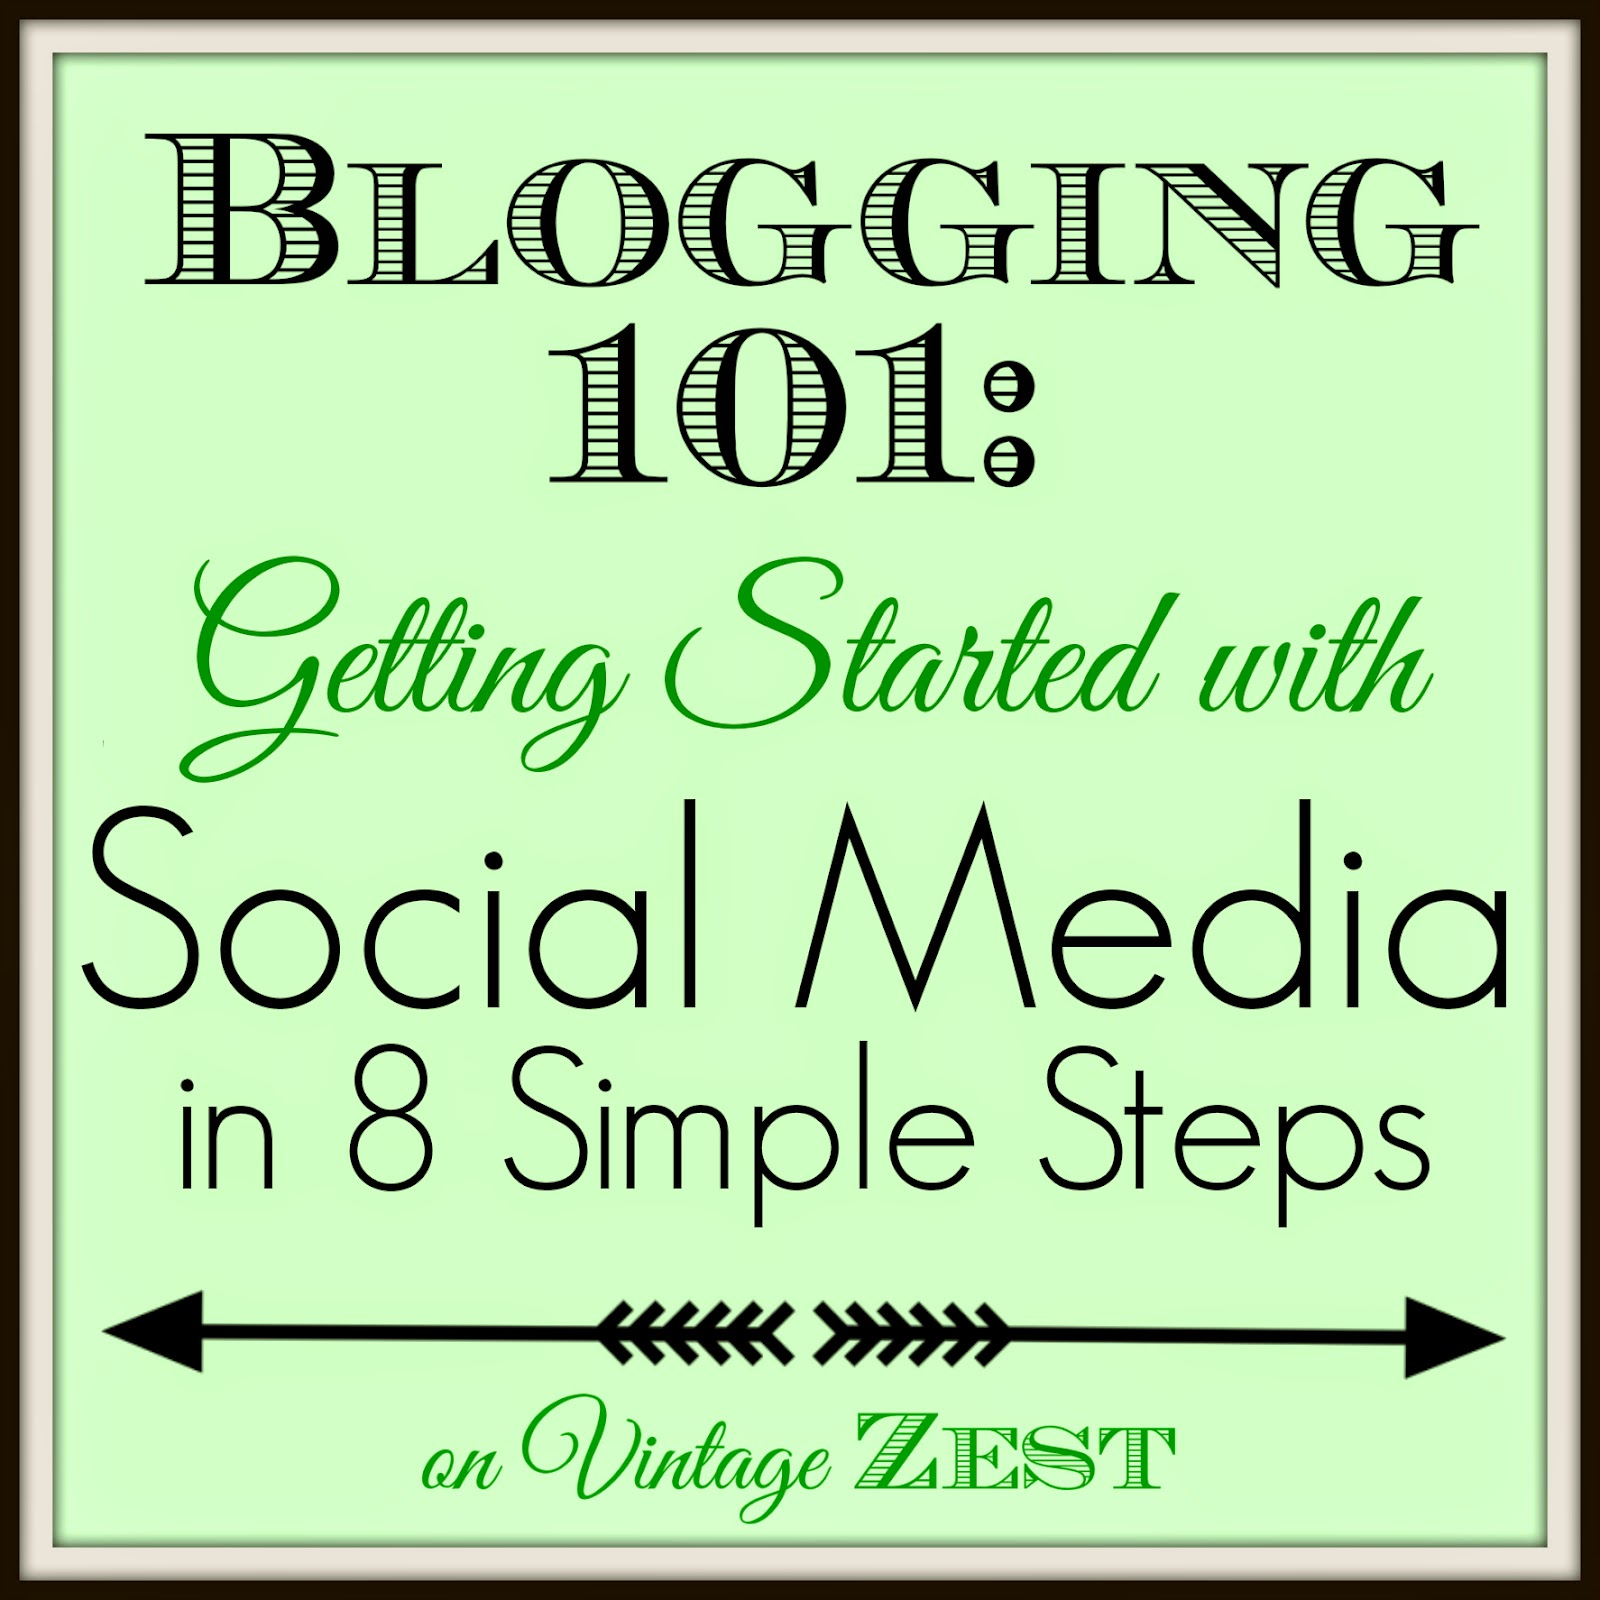 Blogging 101: Getting Started with Social Media in 8 Simple Steps